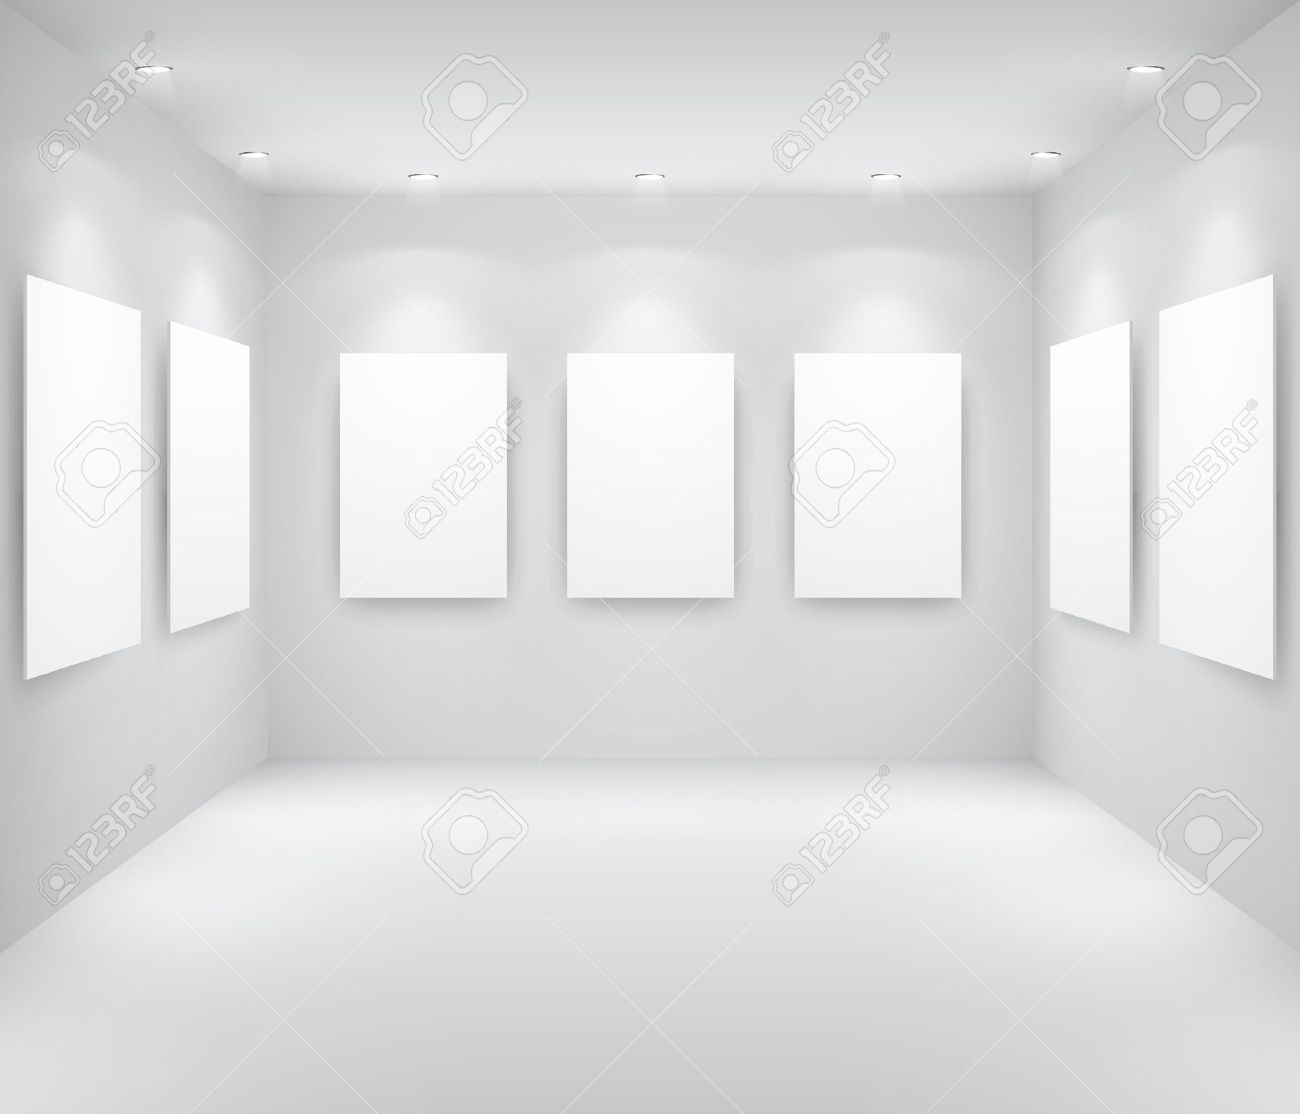 Gallery interior with empty frames on wall royalty free cliparts gallery interior with empty frames on wall stock vector 9566423 sciox Images